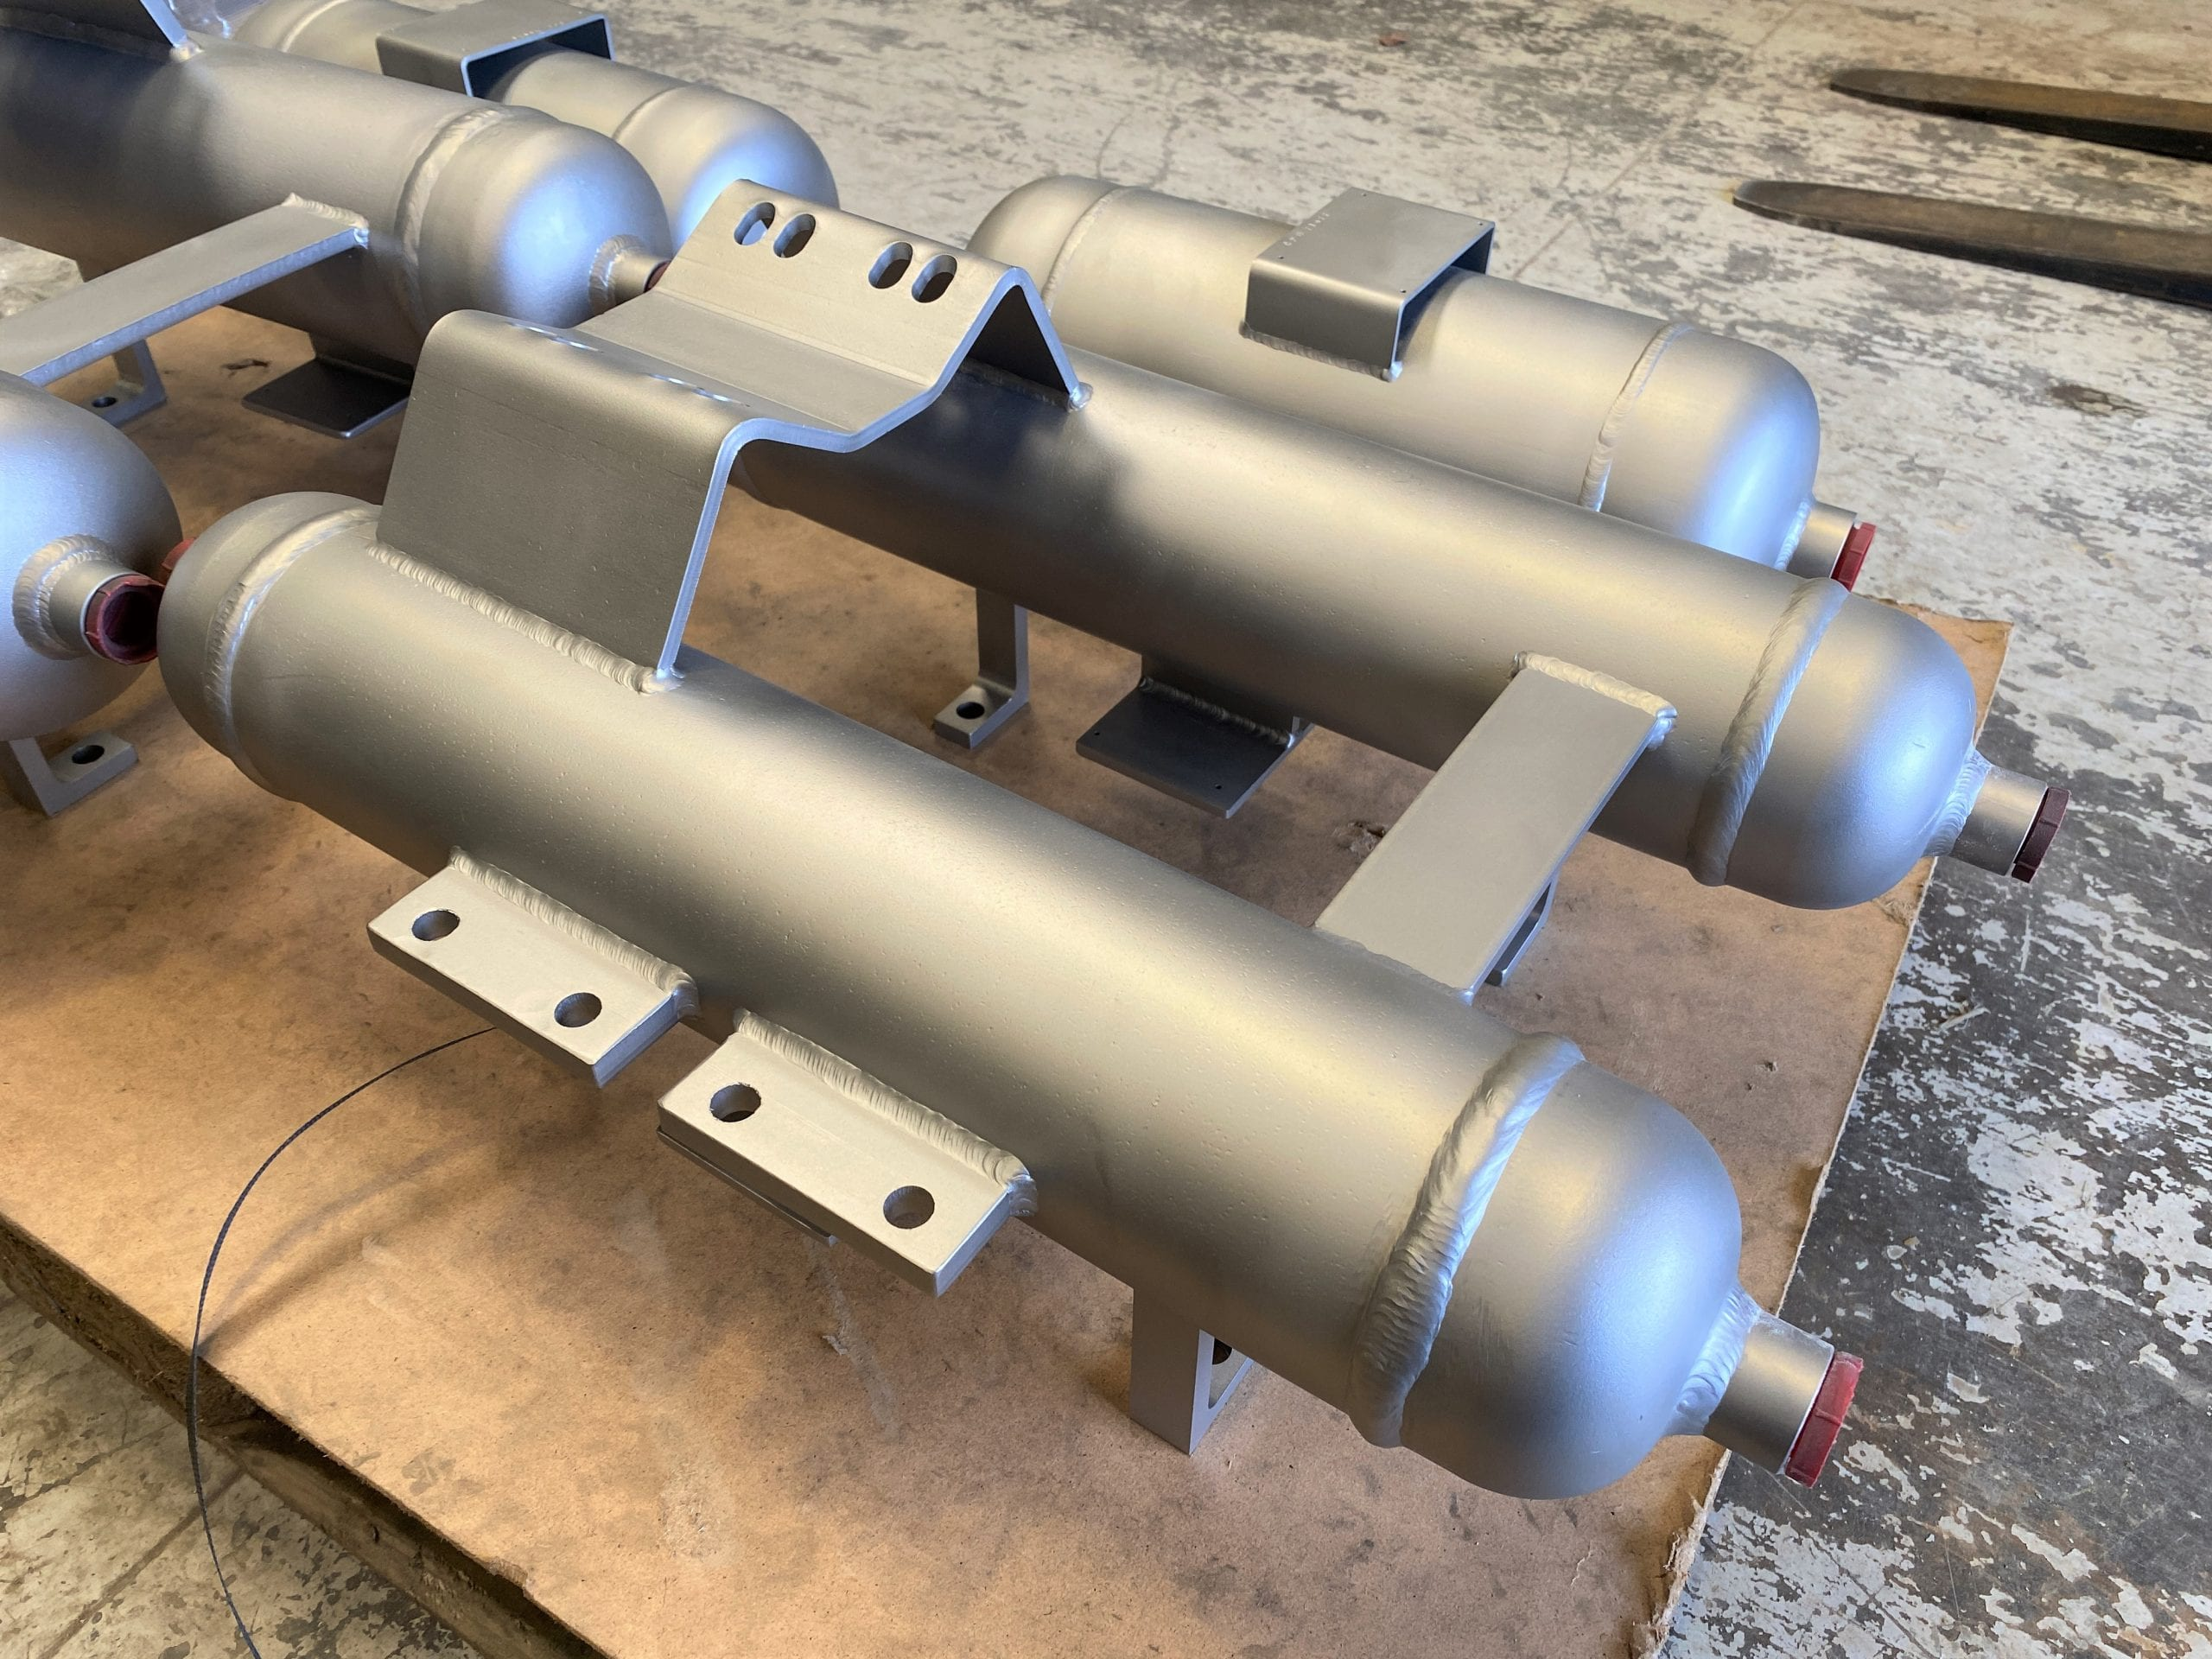 UKCA Mark Pressure Vessels from Stainless steel 316/L